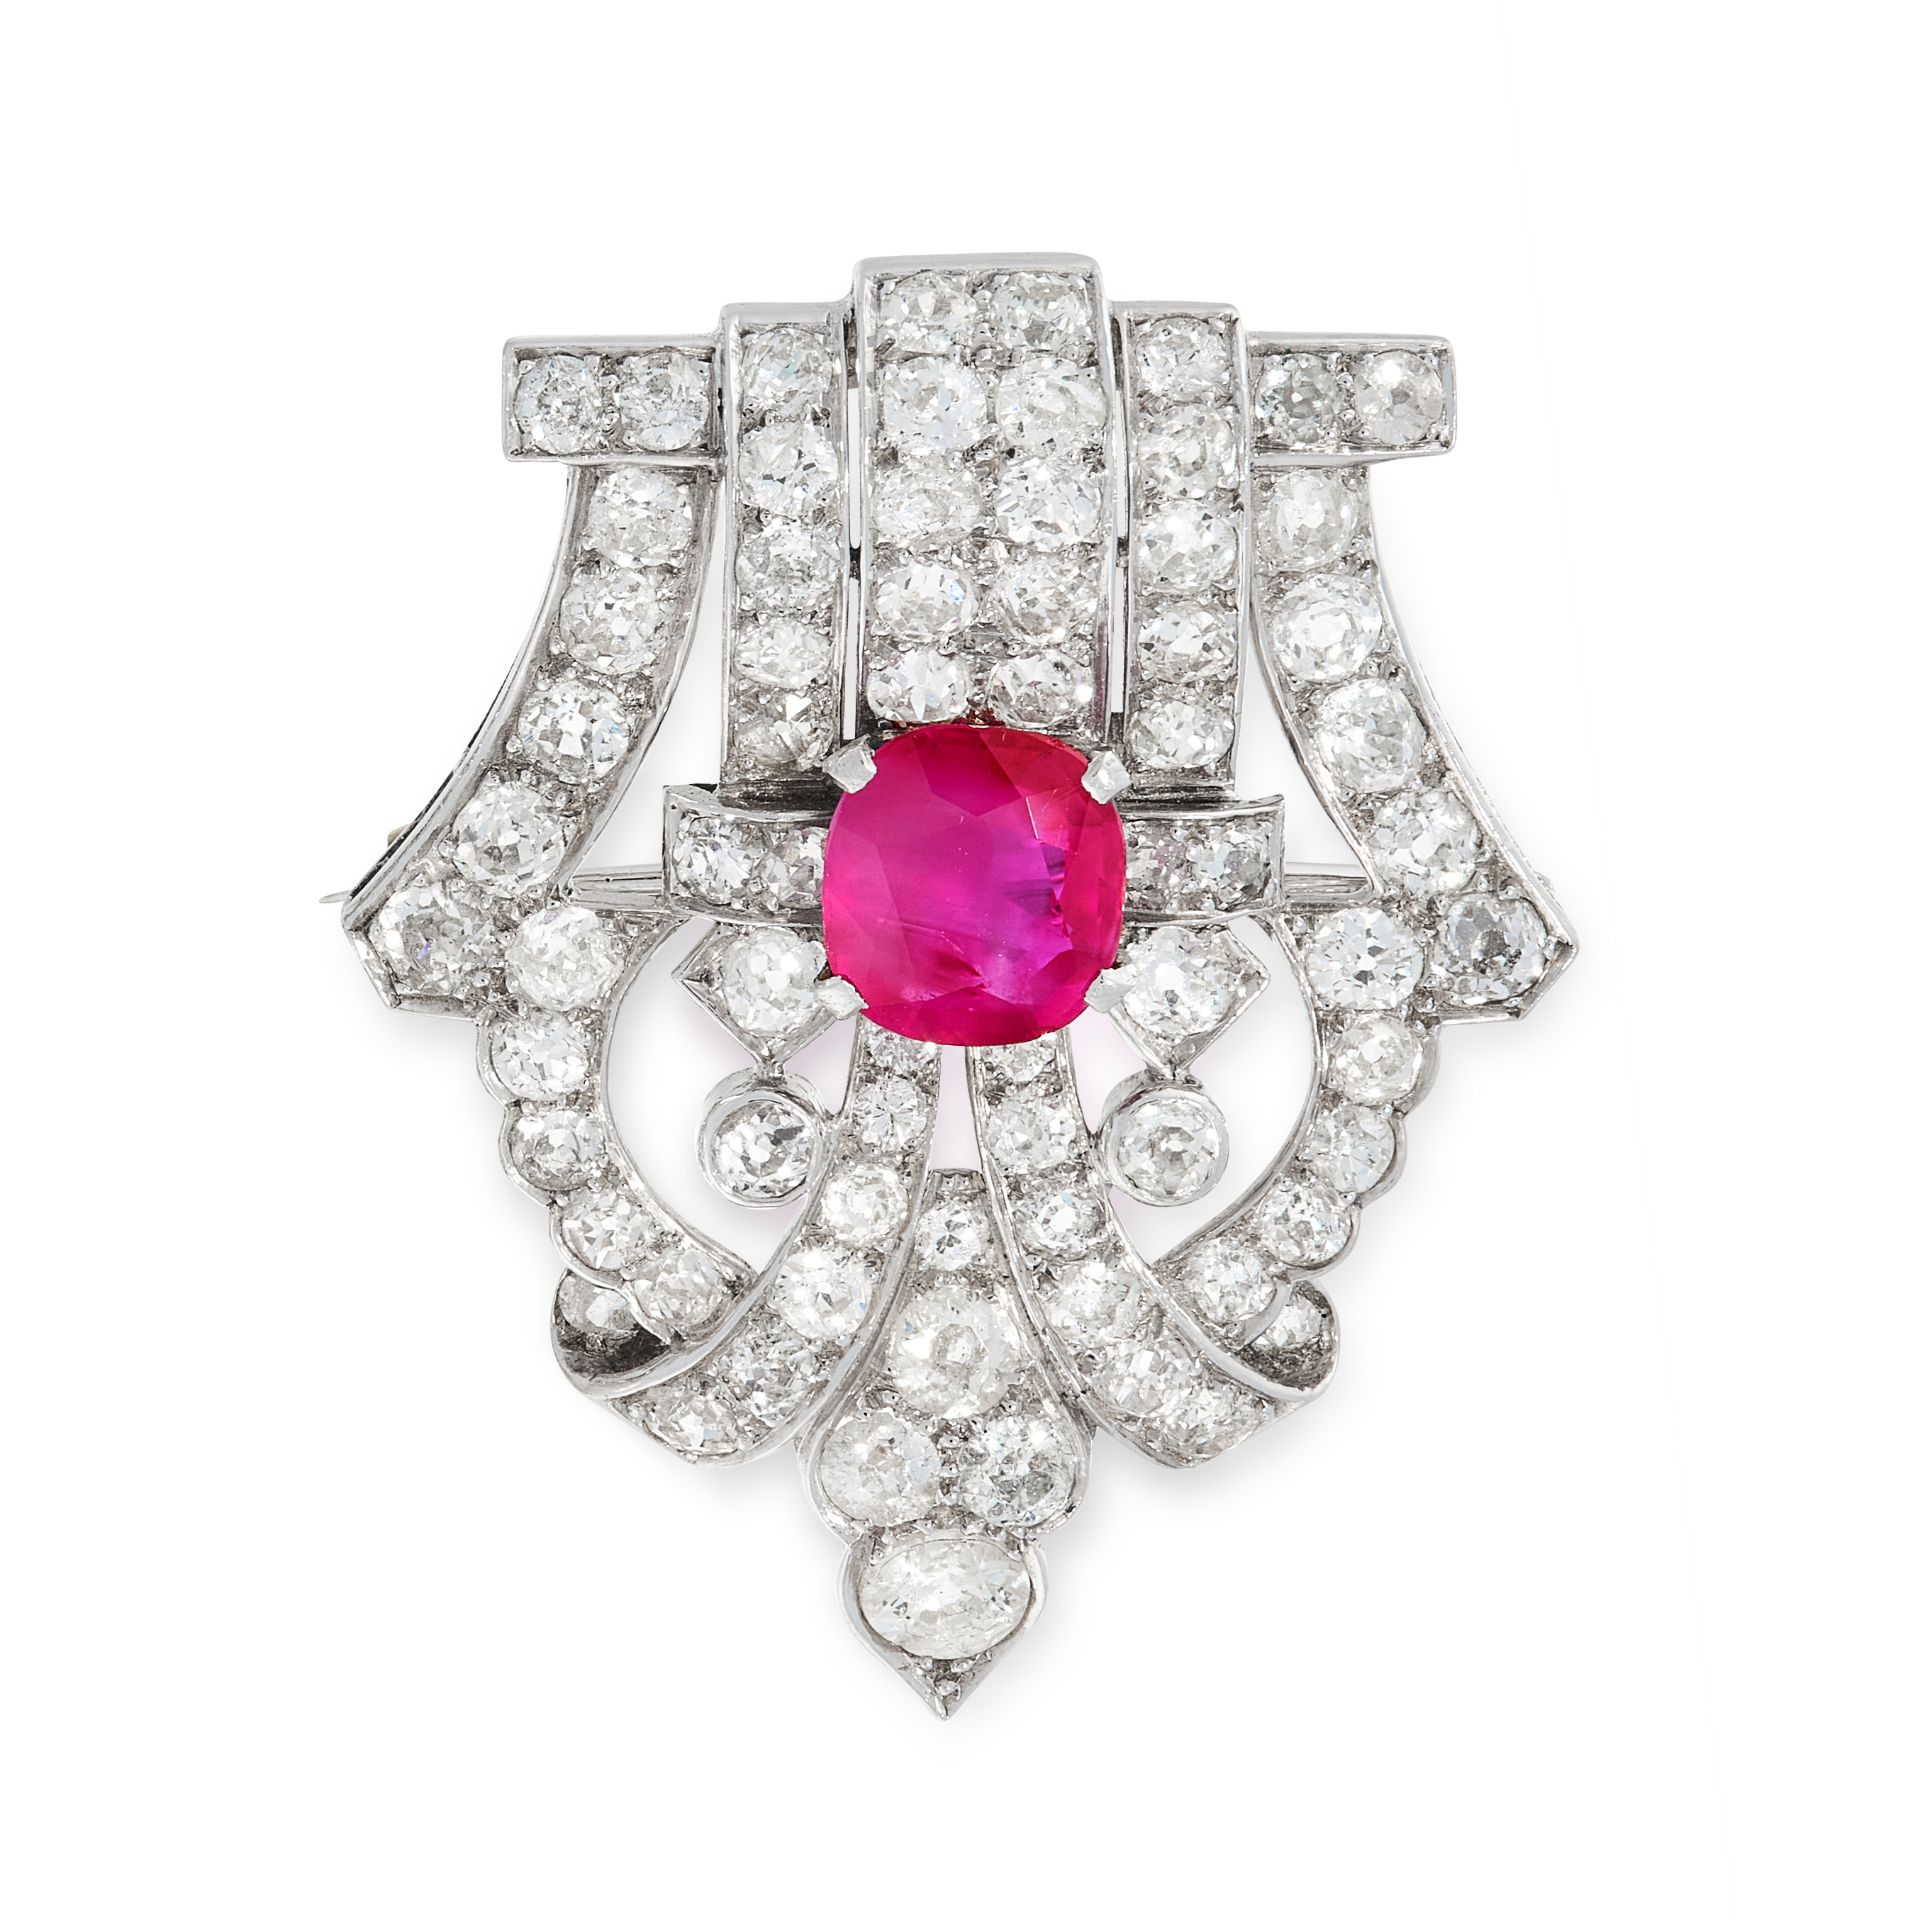 A RUBY AND DIAMOND BROOCH, EARLY 20TH CENTURY of shield design, set with a central cushion cut